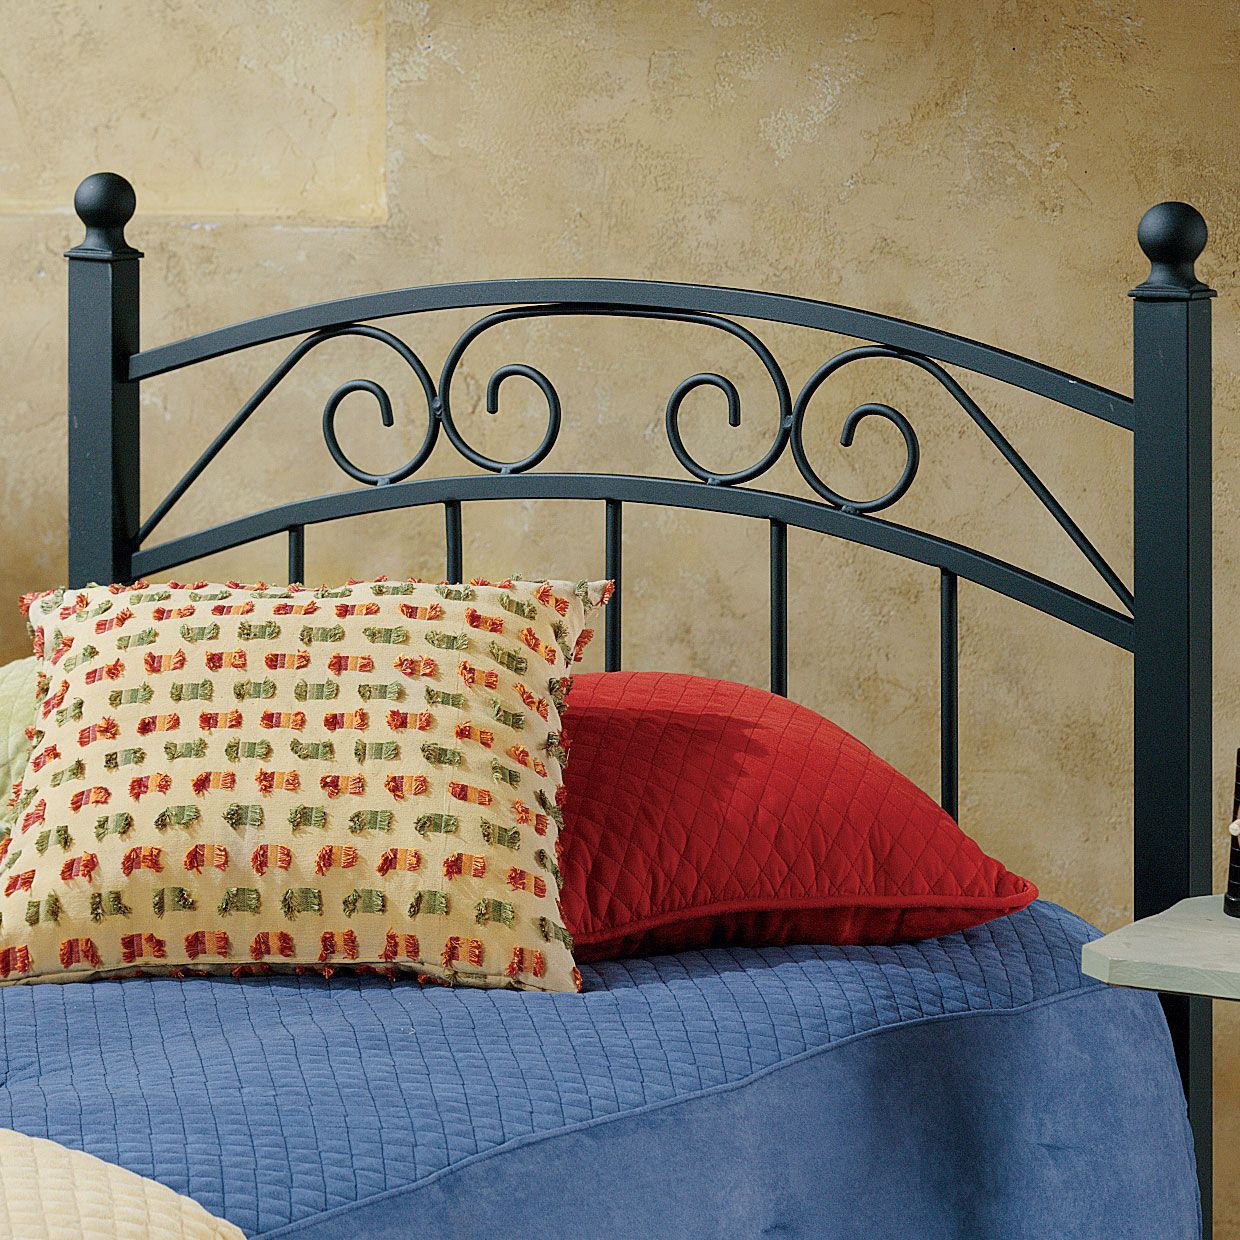 Queen Headboard with Headboard Frame, 71½'Lx62¼'Wx36¼'H, BLACK